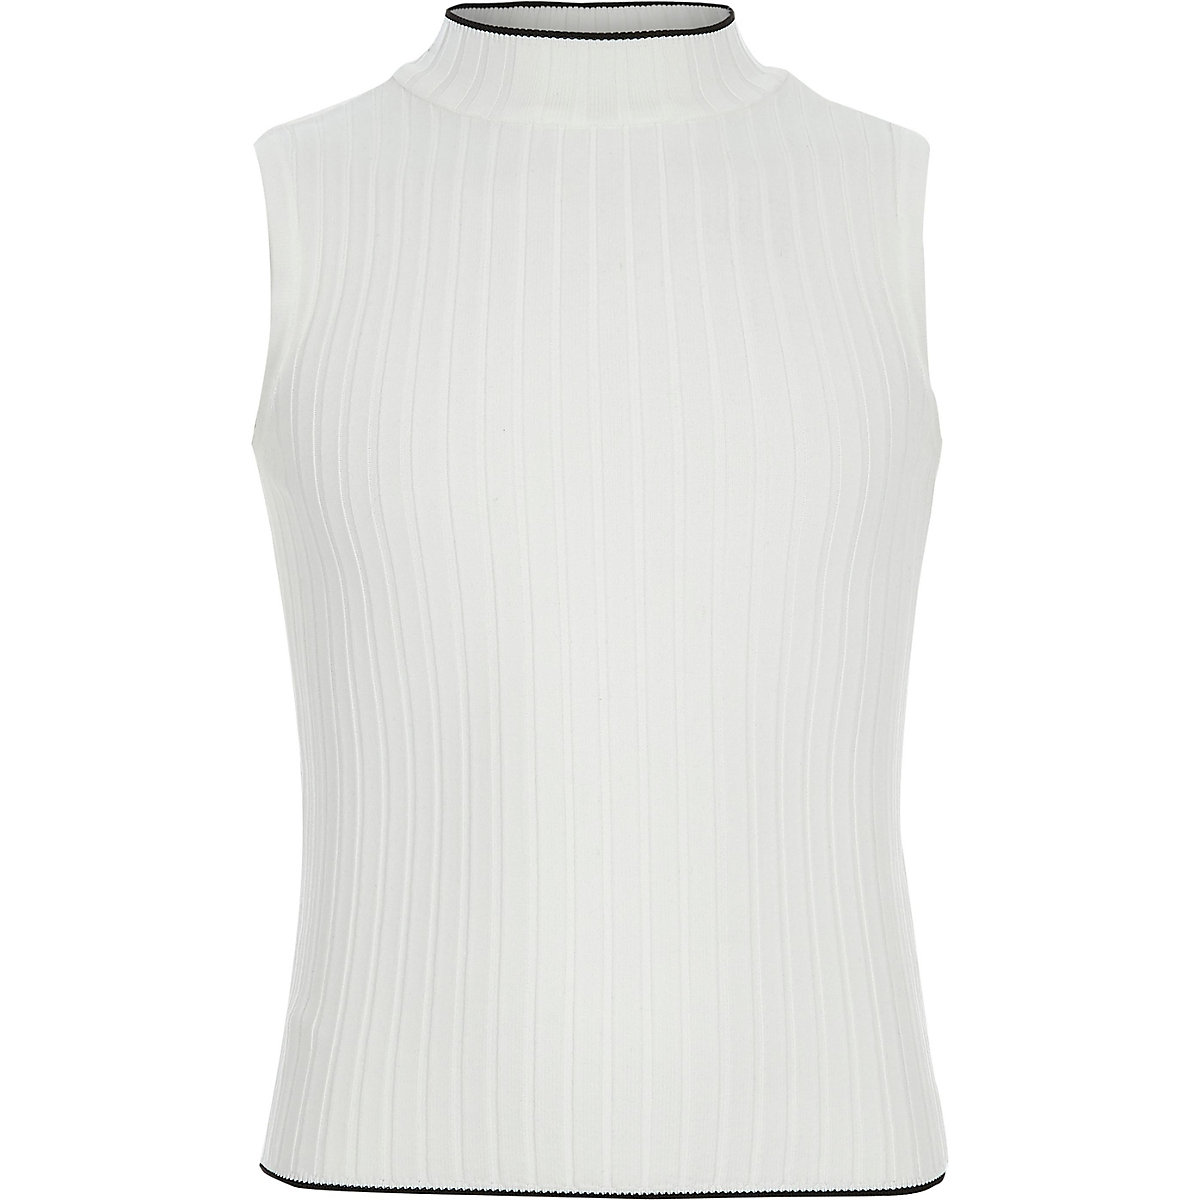 Girls cream ribbed turtle neck tank top